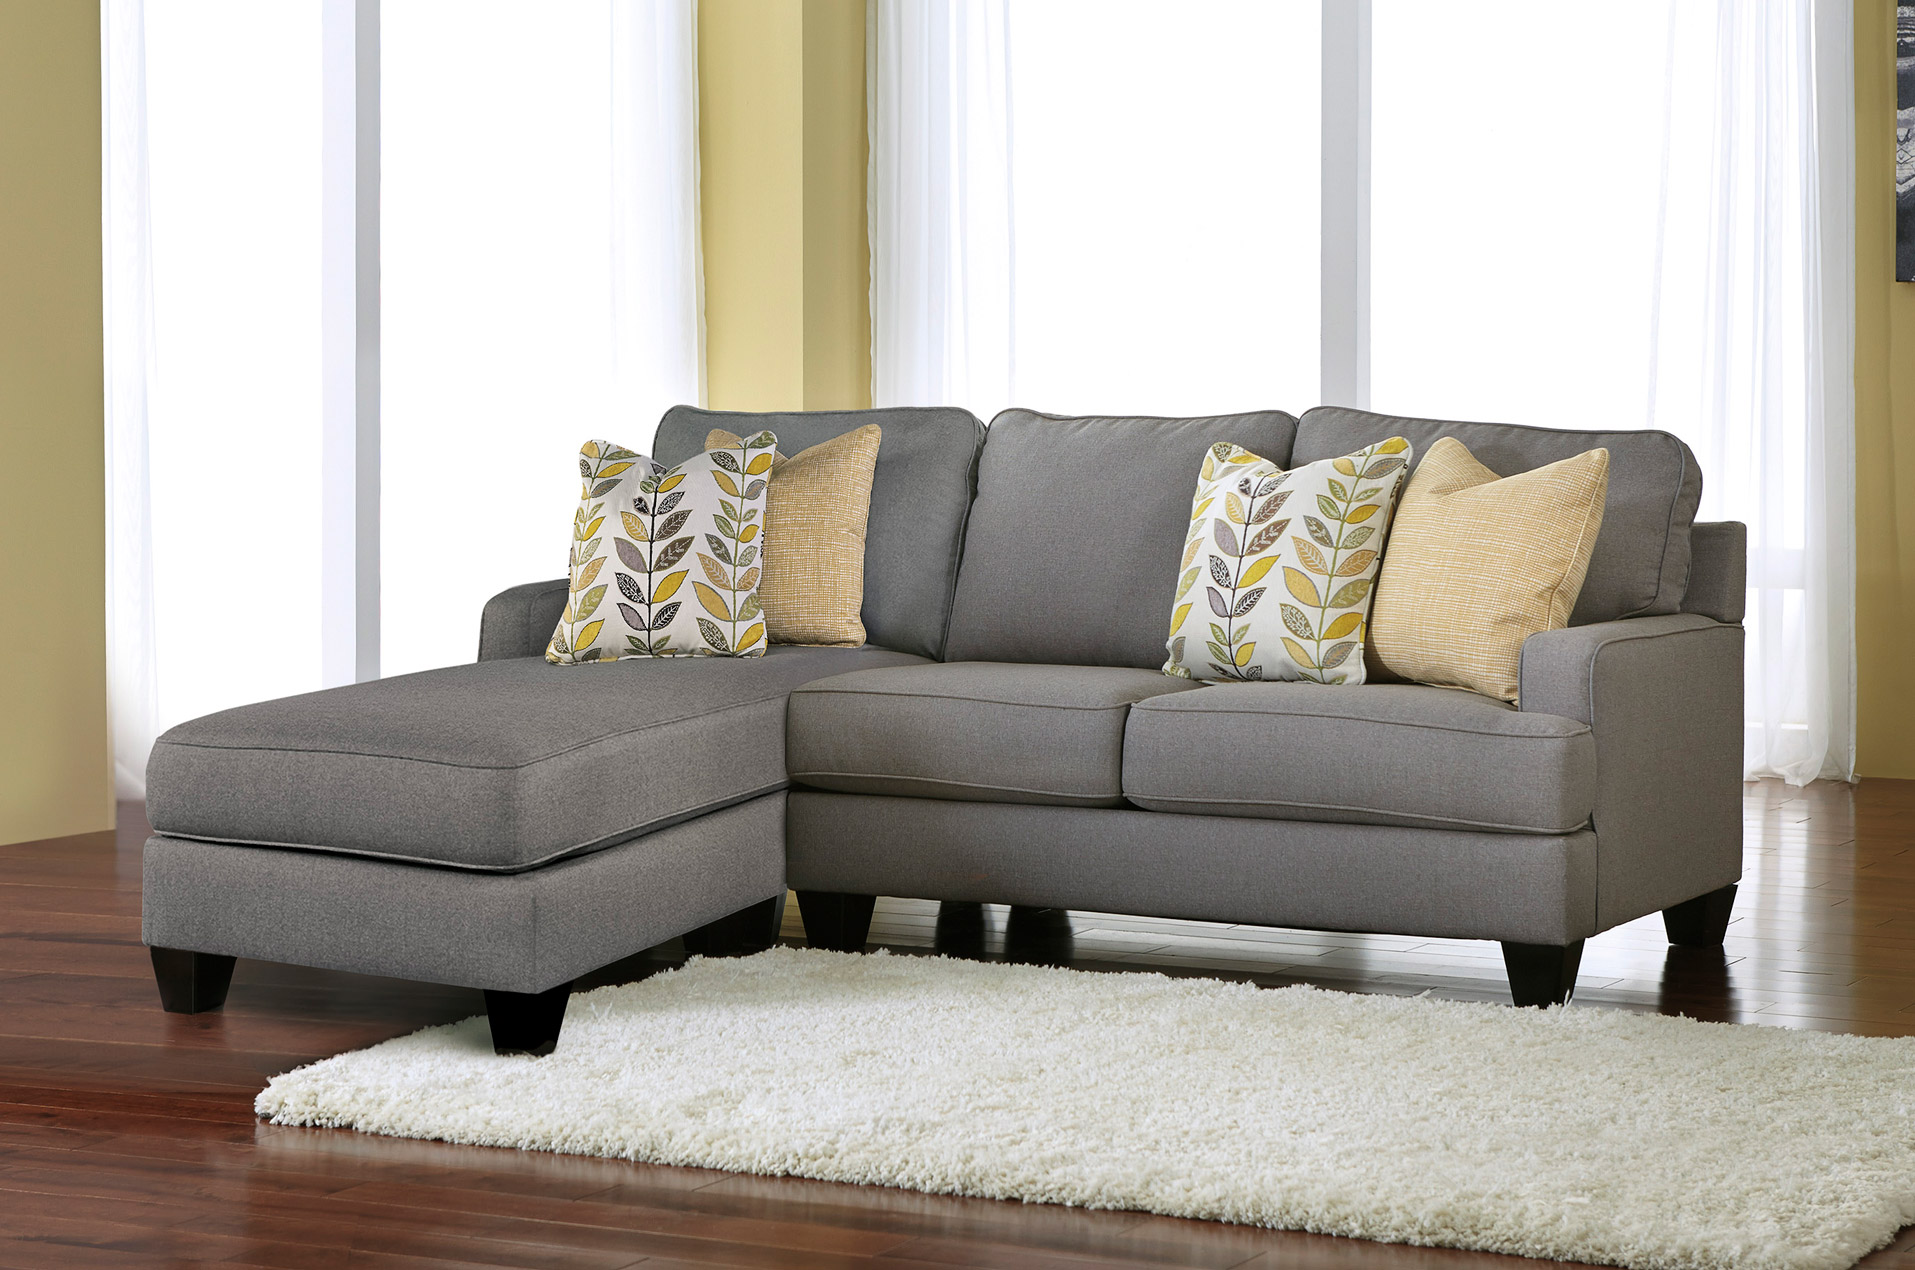 sleeper sofas chicago il good for bad backs chamberly alloy sectional | marjen of ...